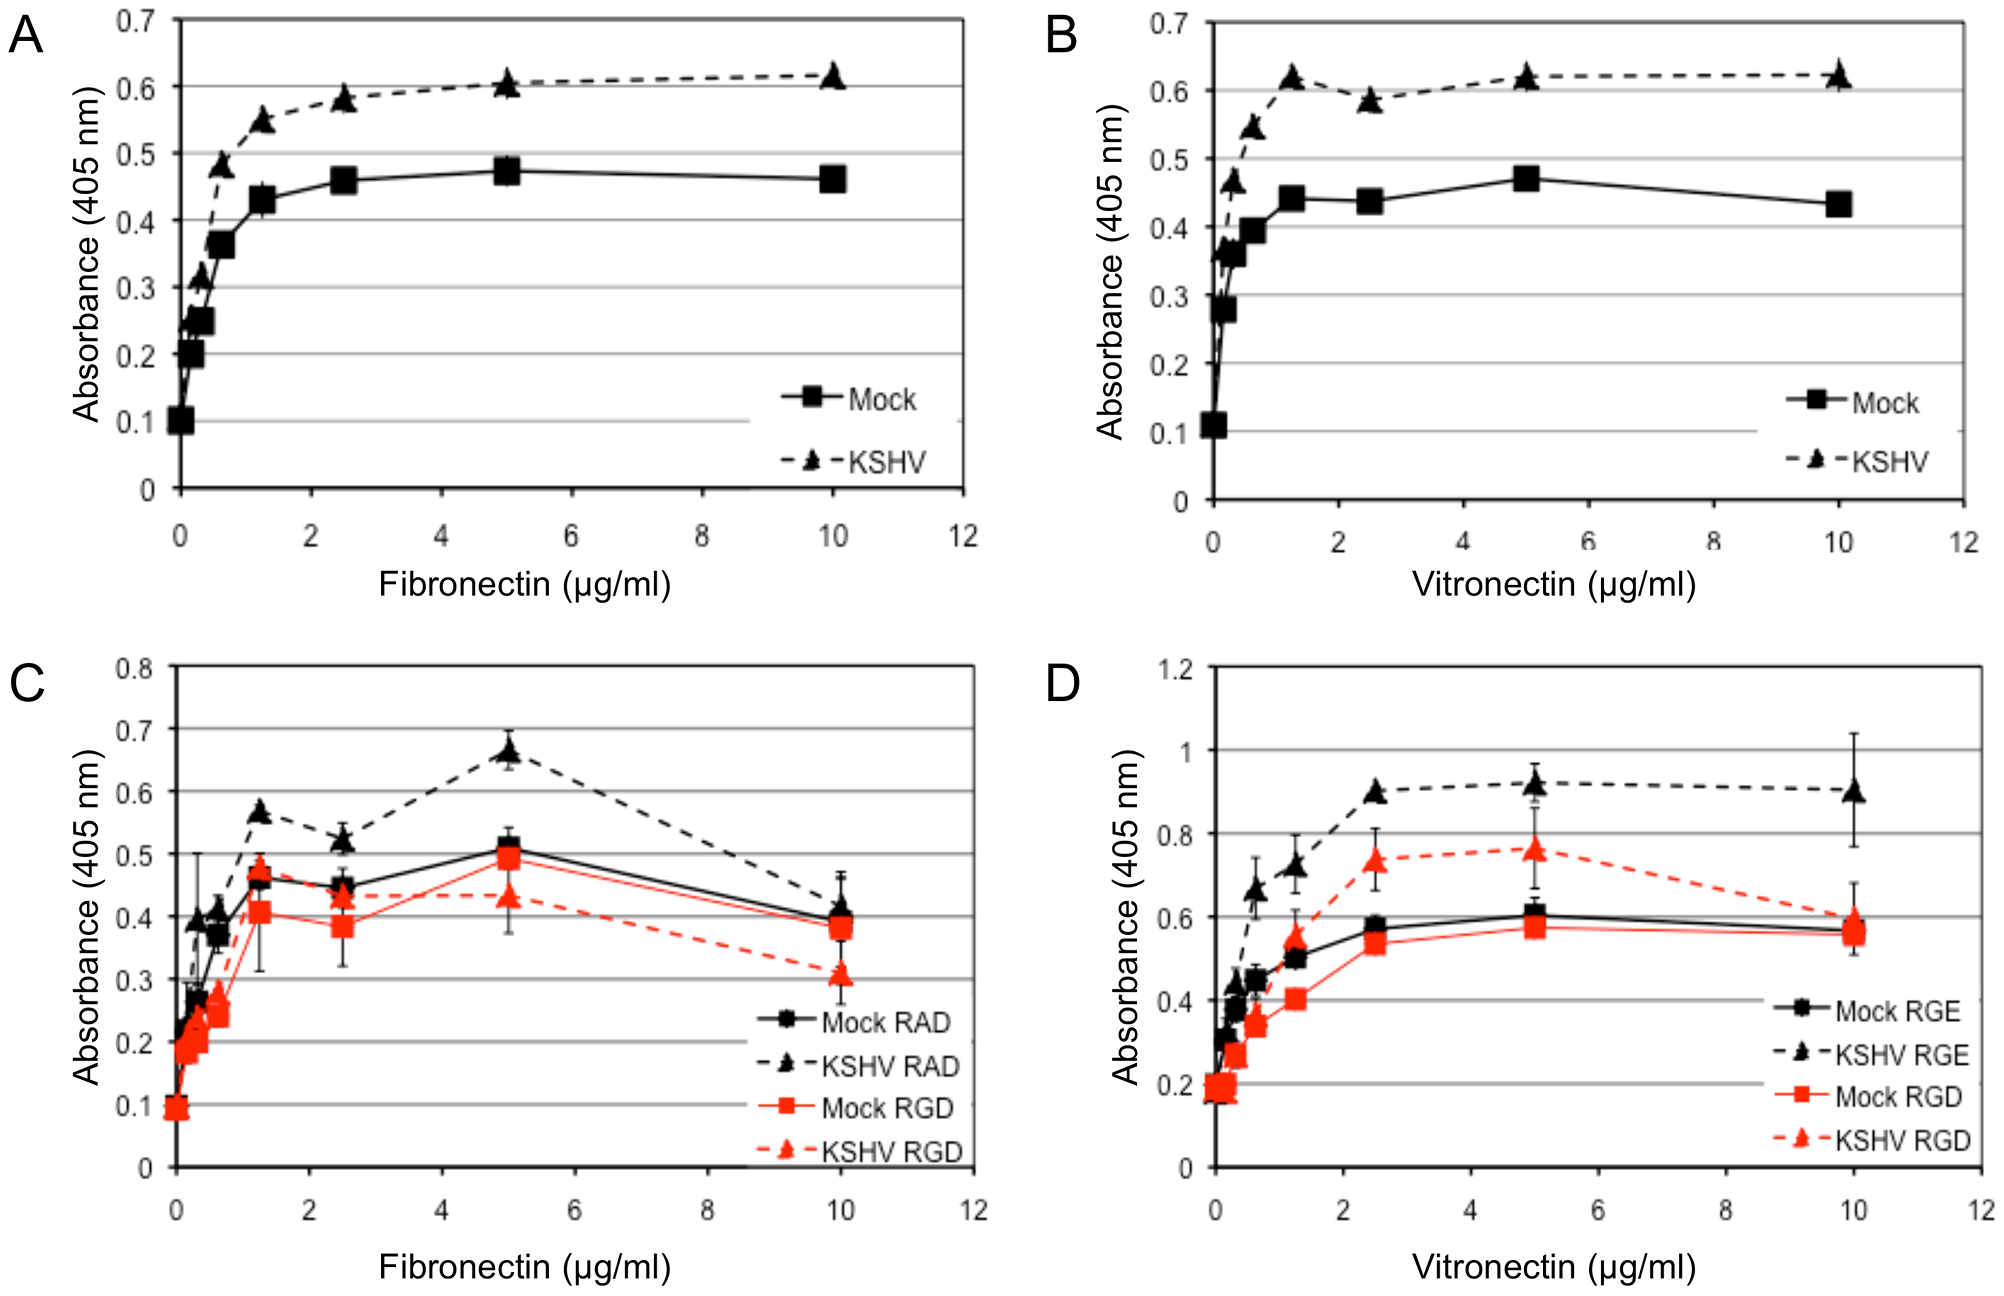 KSHV latent infection promotes adhesion to fibronectin and vitronectin in an integrin-dependent fashion.